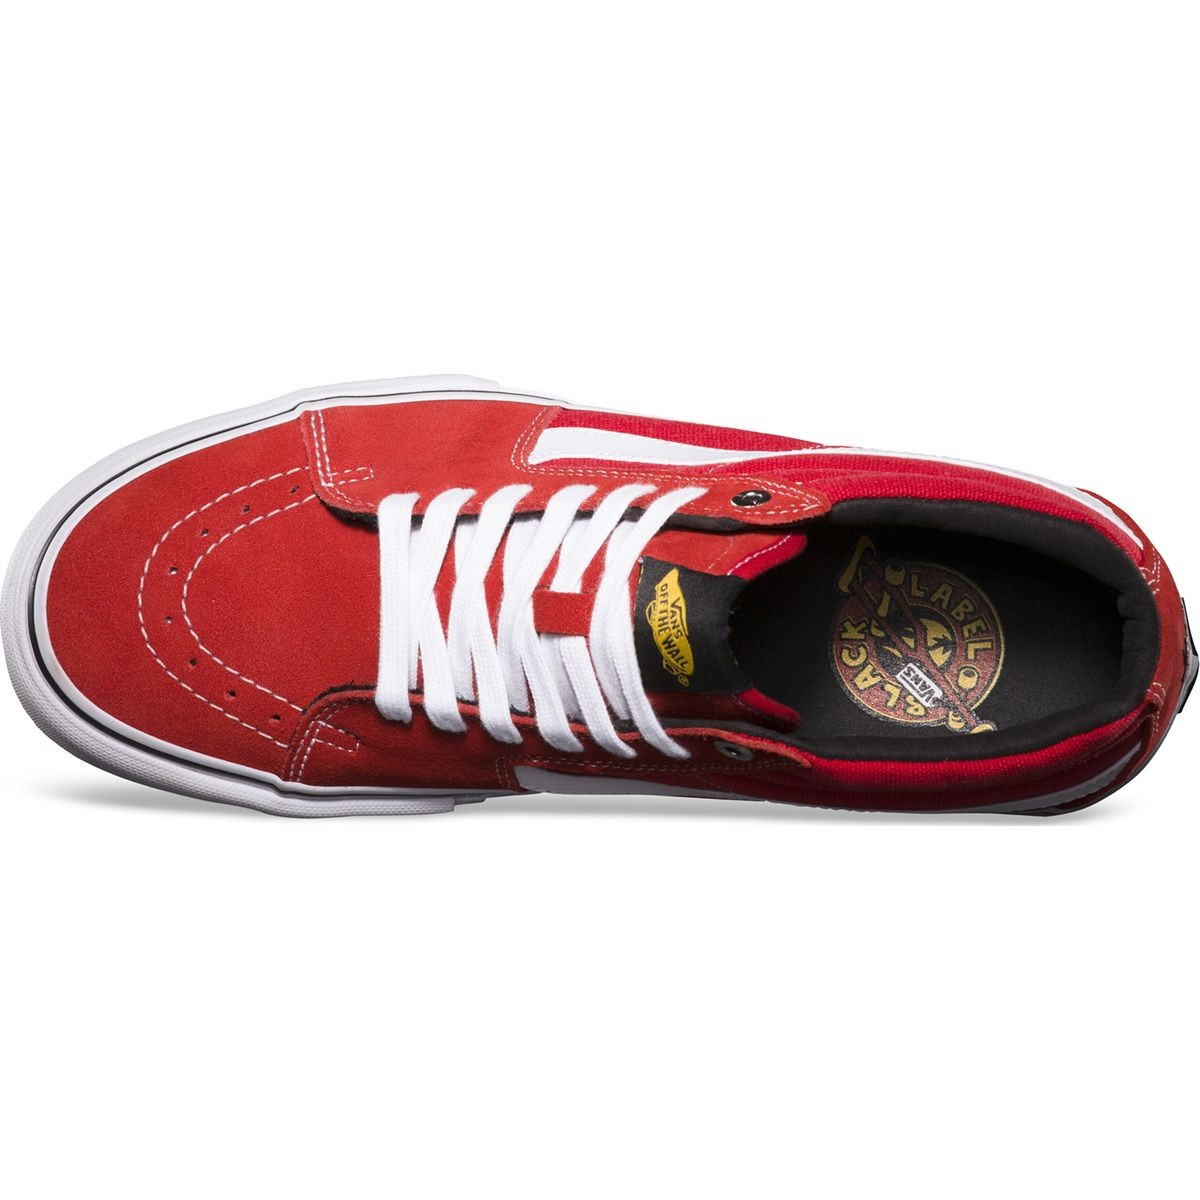 f668032b61 Vans Black Label Sk8-Mid Pro Shoes - Red - 8.0